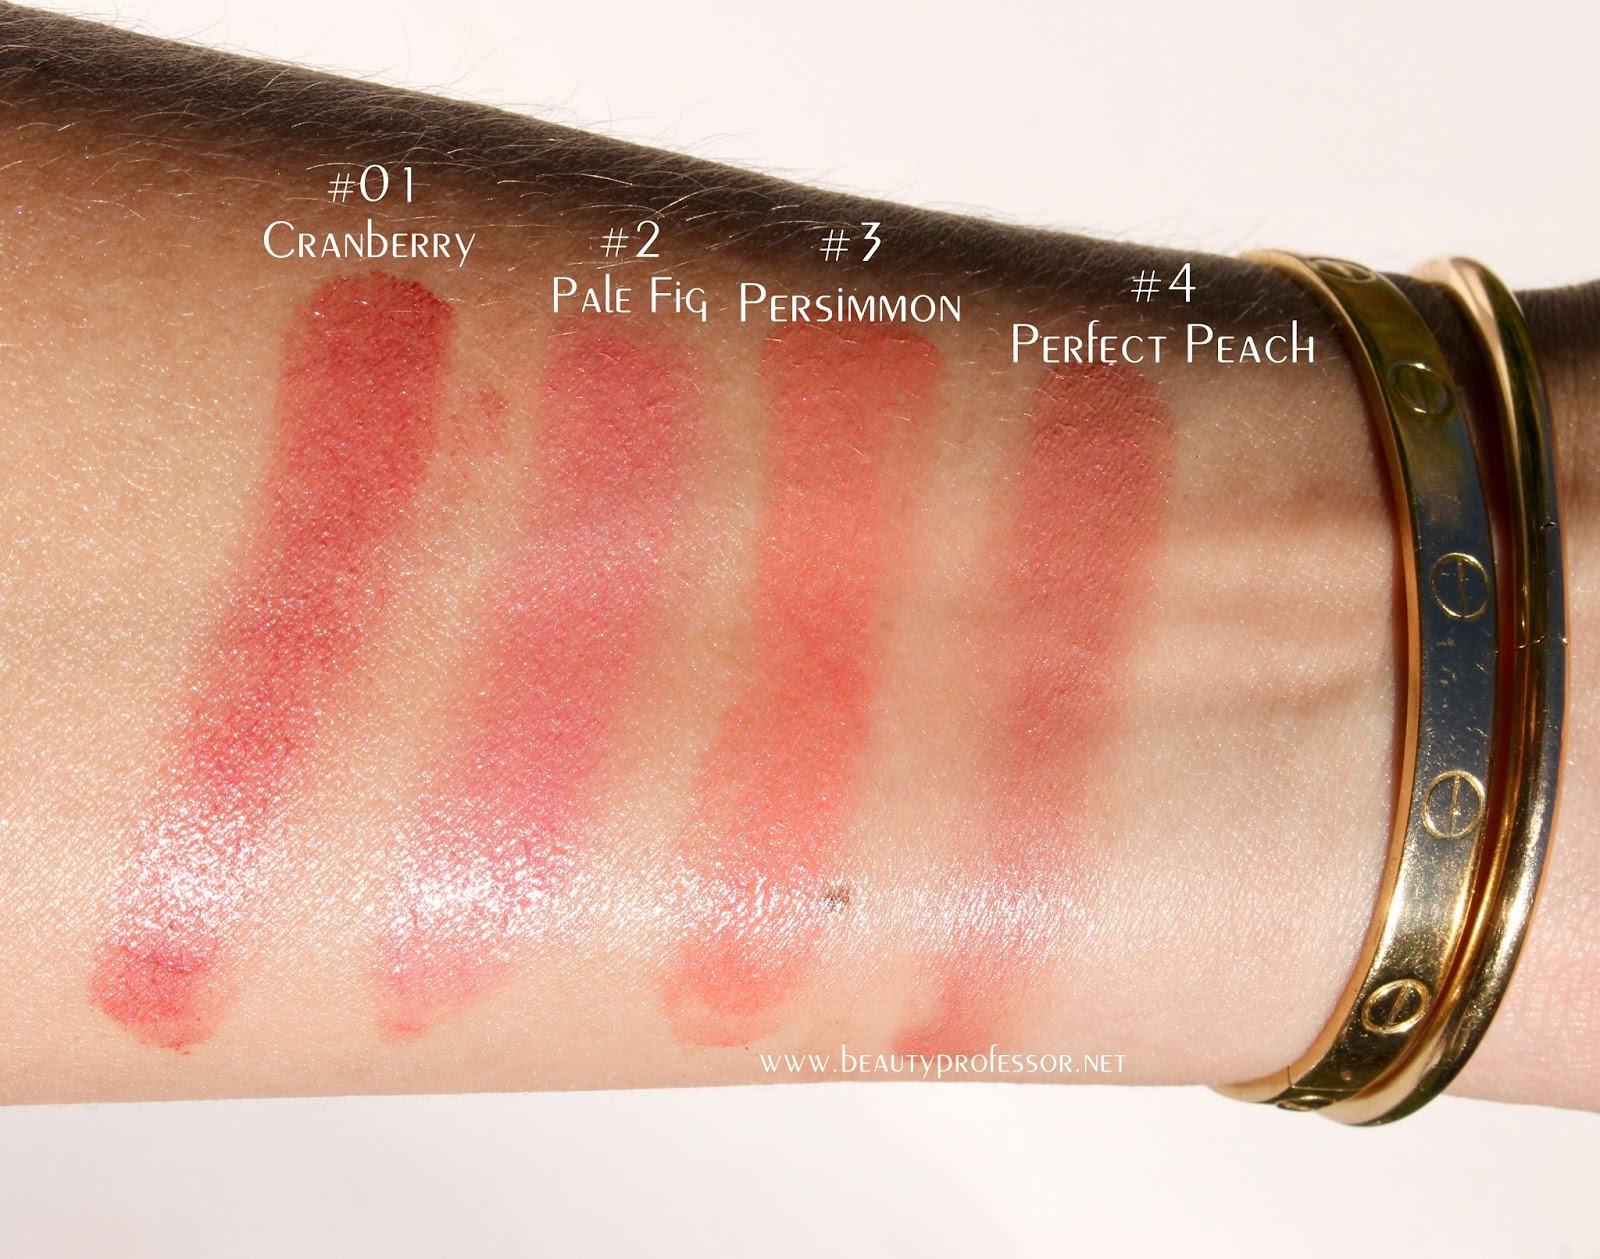 Test Drive: how to use a gel blush Fusion Ink Blush?